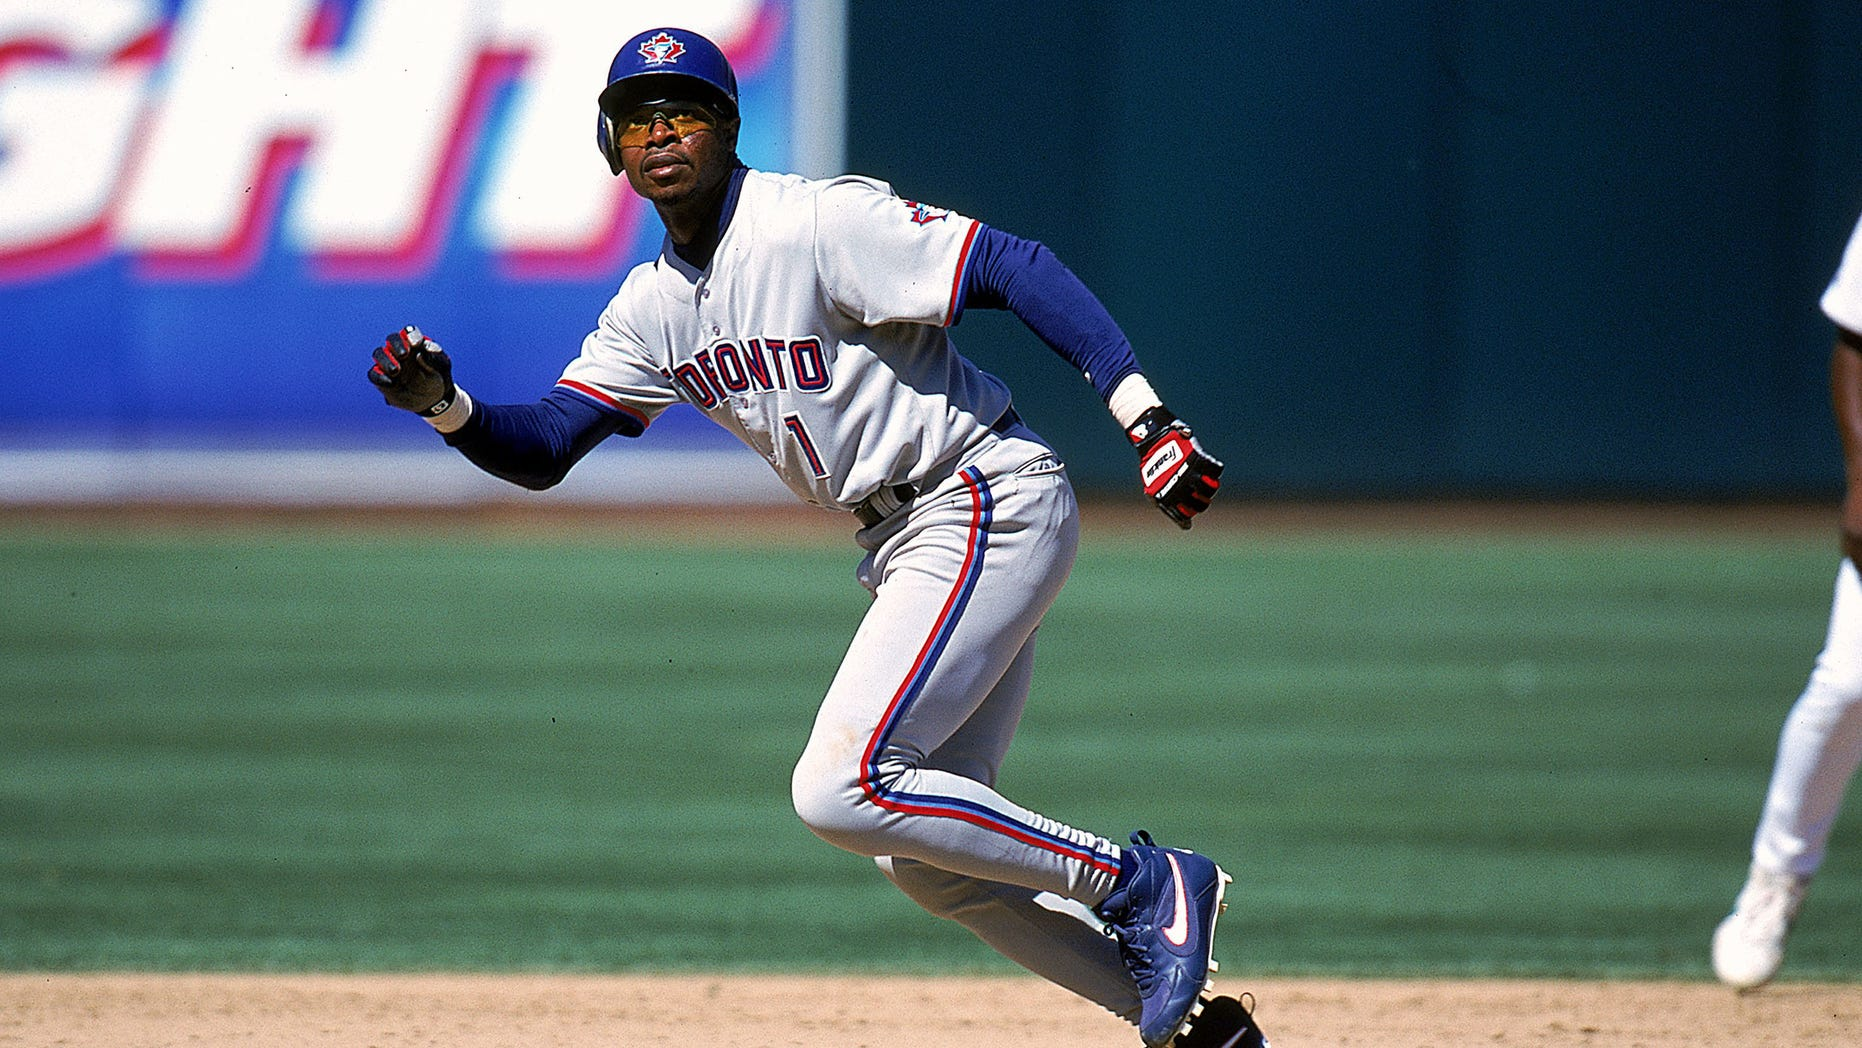 23 Aug 1999: Tony Fernandez #1 of the Toronto Blue Jays runs to a base during a game against the Oakland Athletics at the Network Coliseum in Oakland, California. The Blue Jays defeated the A's 9-4. Mandatory Credit: Jonathan Daniel  /Allsport